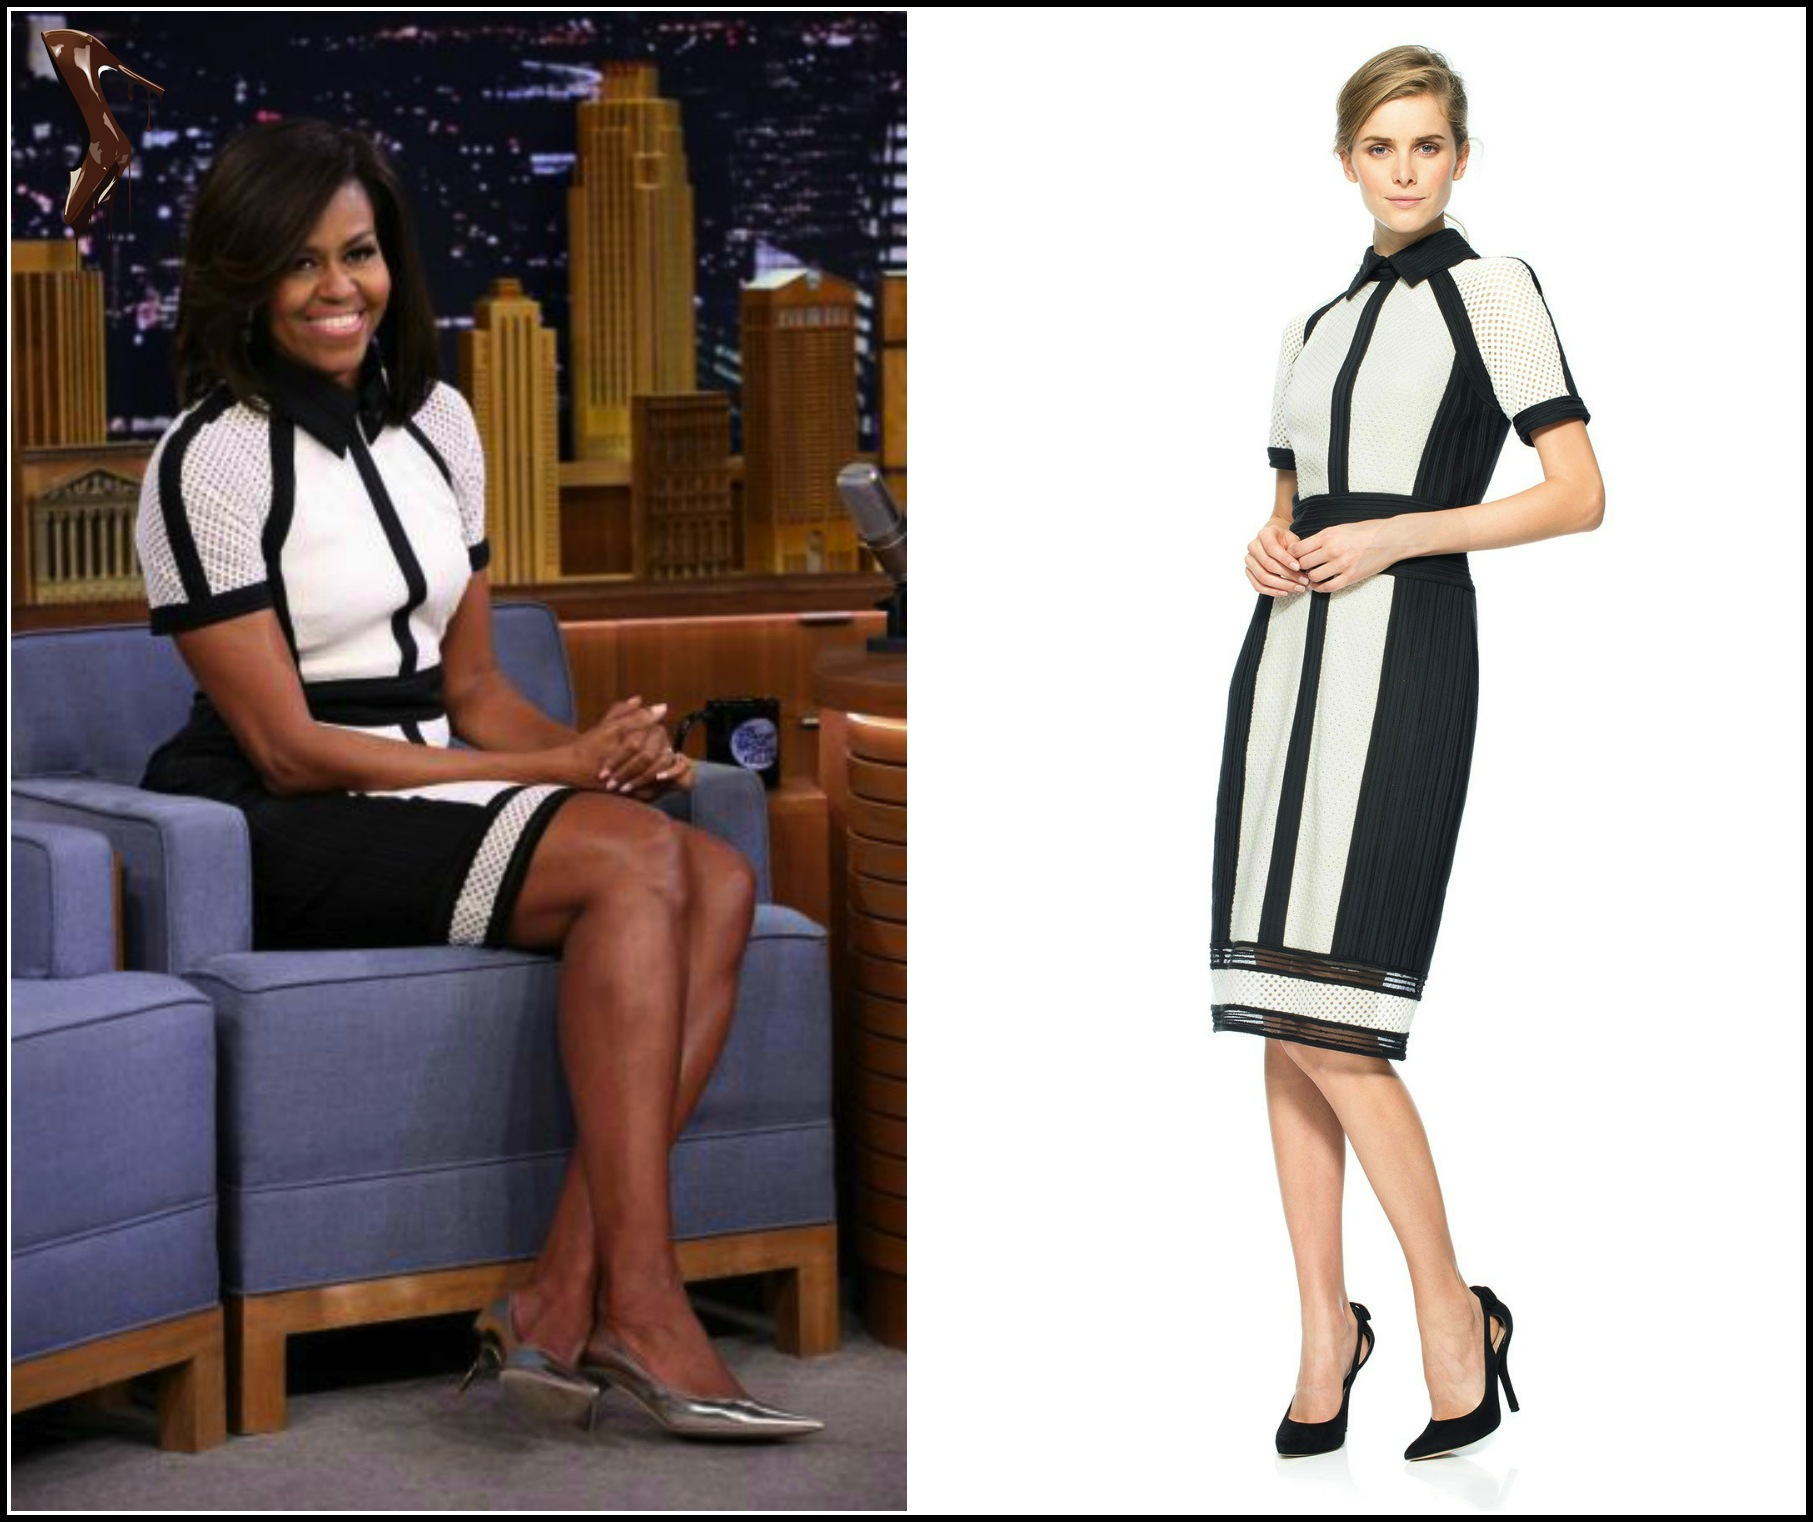 Michelle-Obama- Styles-In-Black-and-White-Tadashi-Shoji- Crochet-Embroidered-Knit- Collared-Dress- Takes-To-The-Dance-Floor-With- Jimmy-Fallon-and Celebrates-The-5th- Year-of-Lets-Move Campaign-On-The- Tonight-Show-7